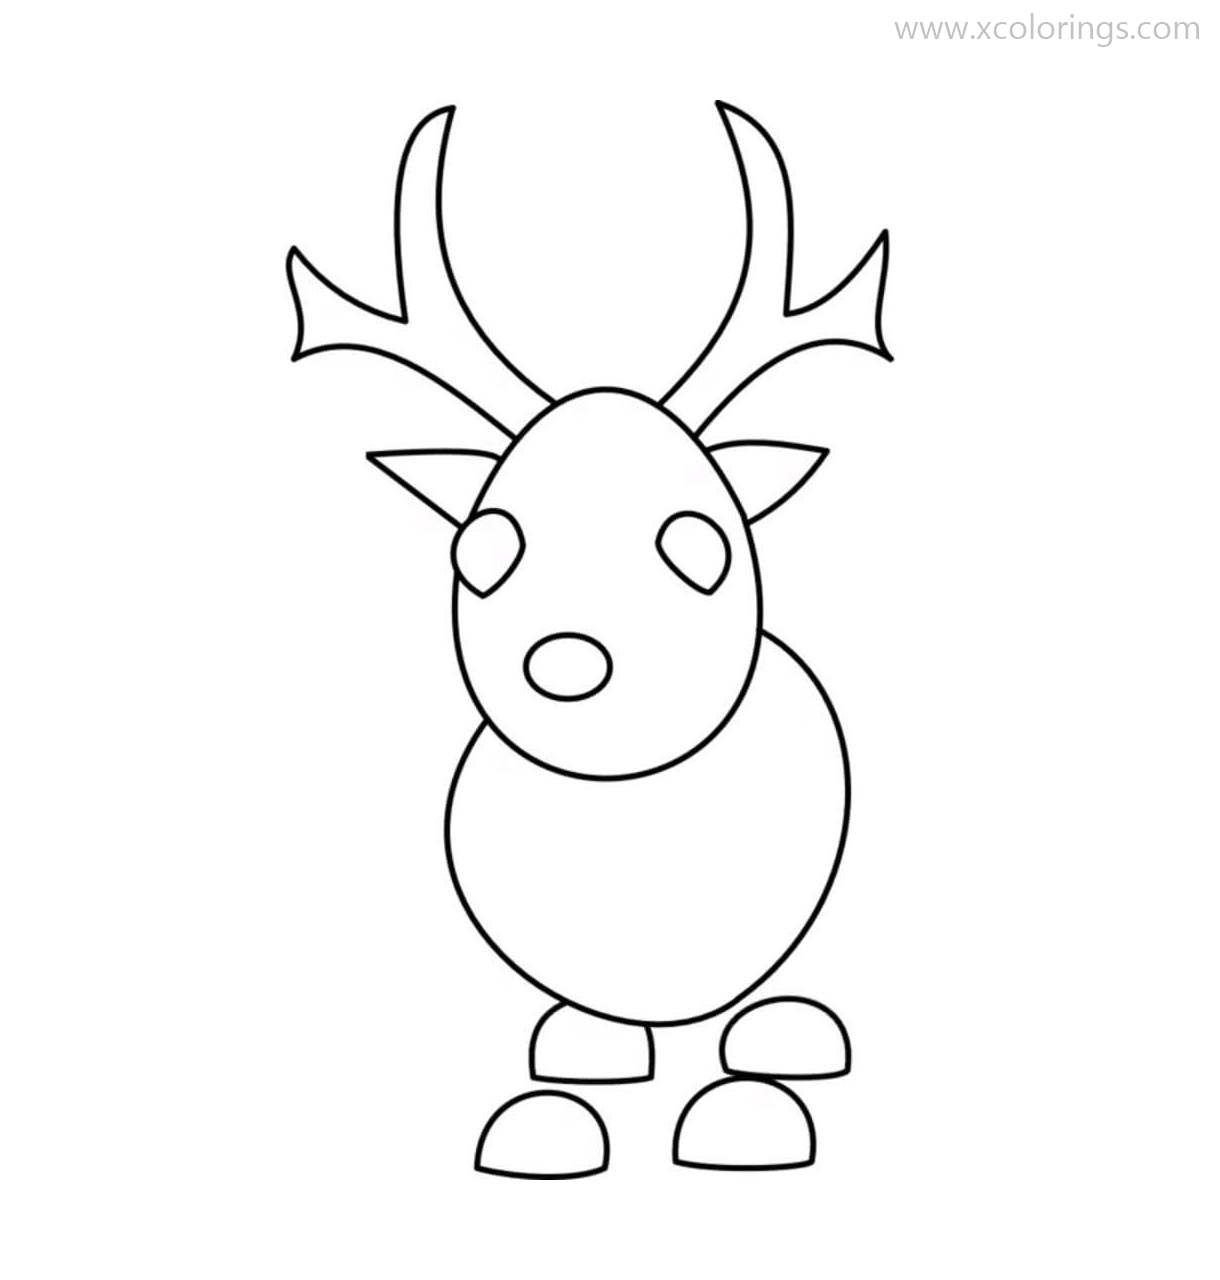 Roblox Adopt Me Coloring Pages Reindeer Pets Drawing Cow Coloring Pages Pokemon Coloring Pages